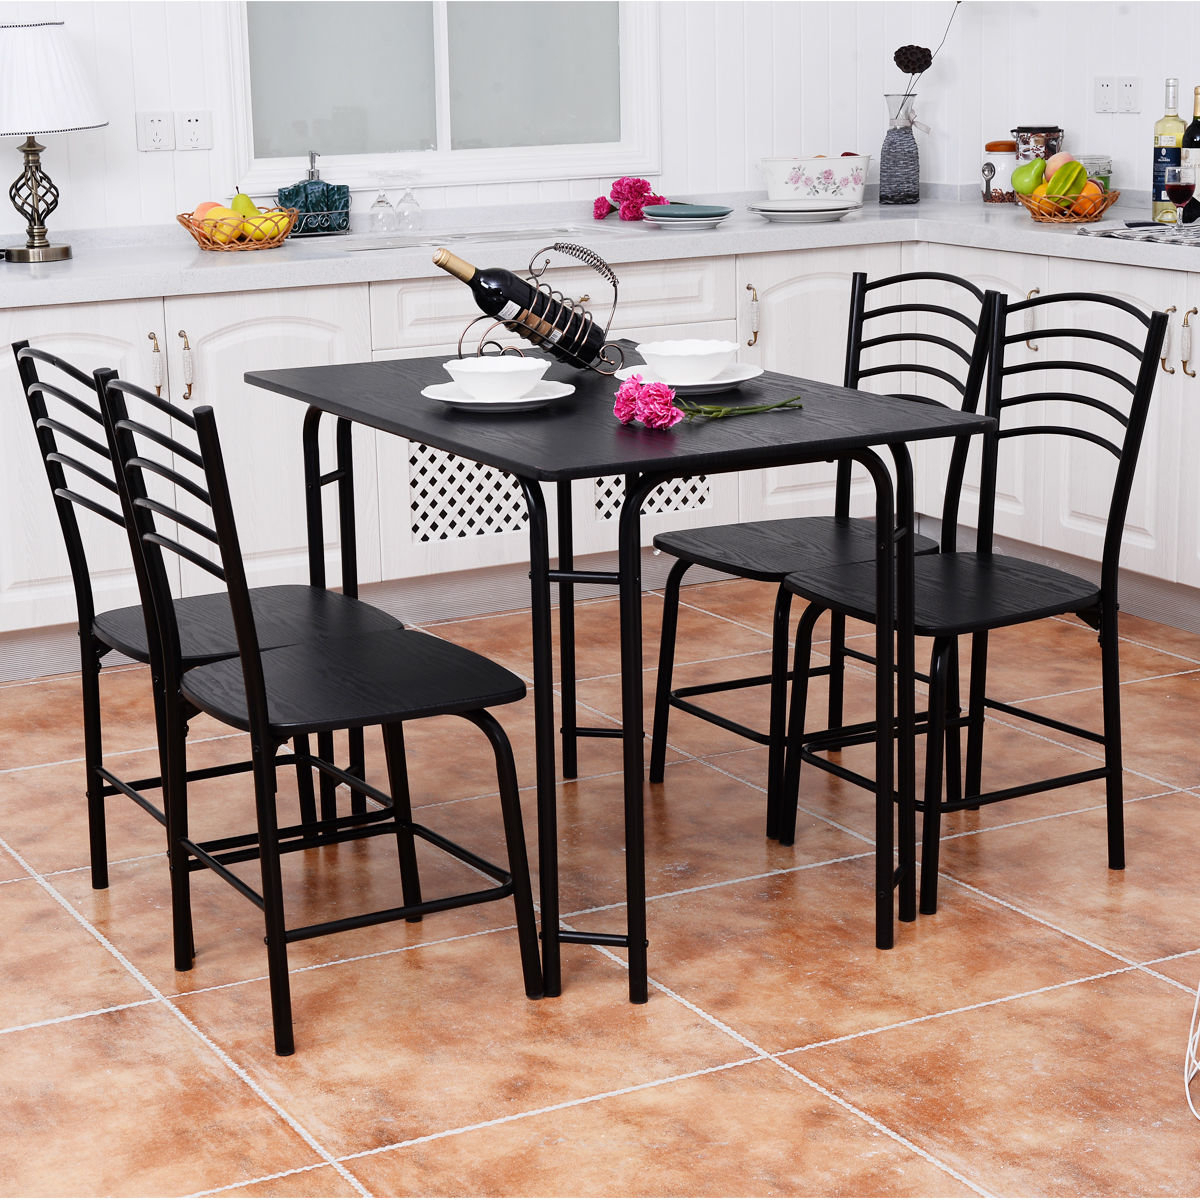 Ebay Pertaining To Famous Ephraim 5 Piece Dining Sets (View 5 of 20)